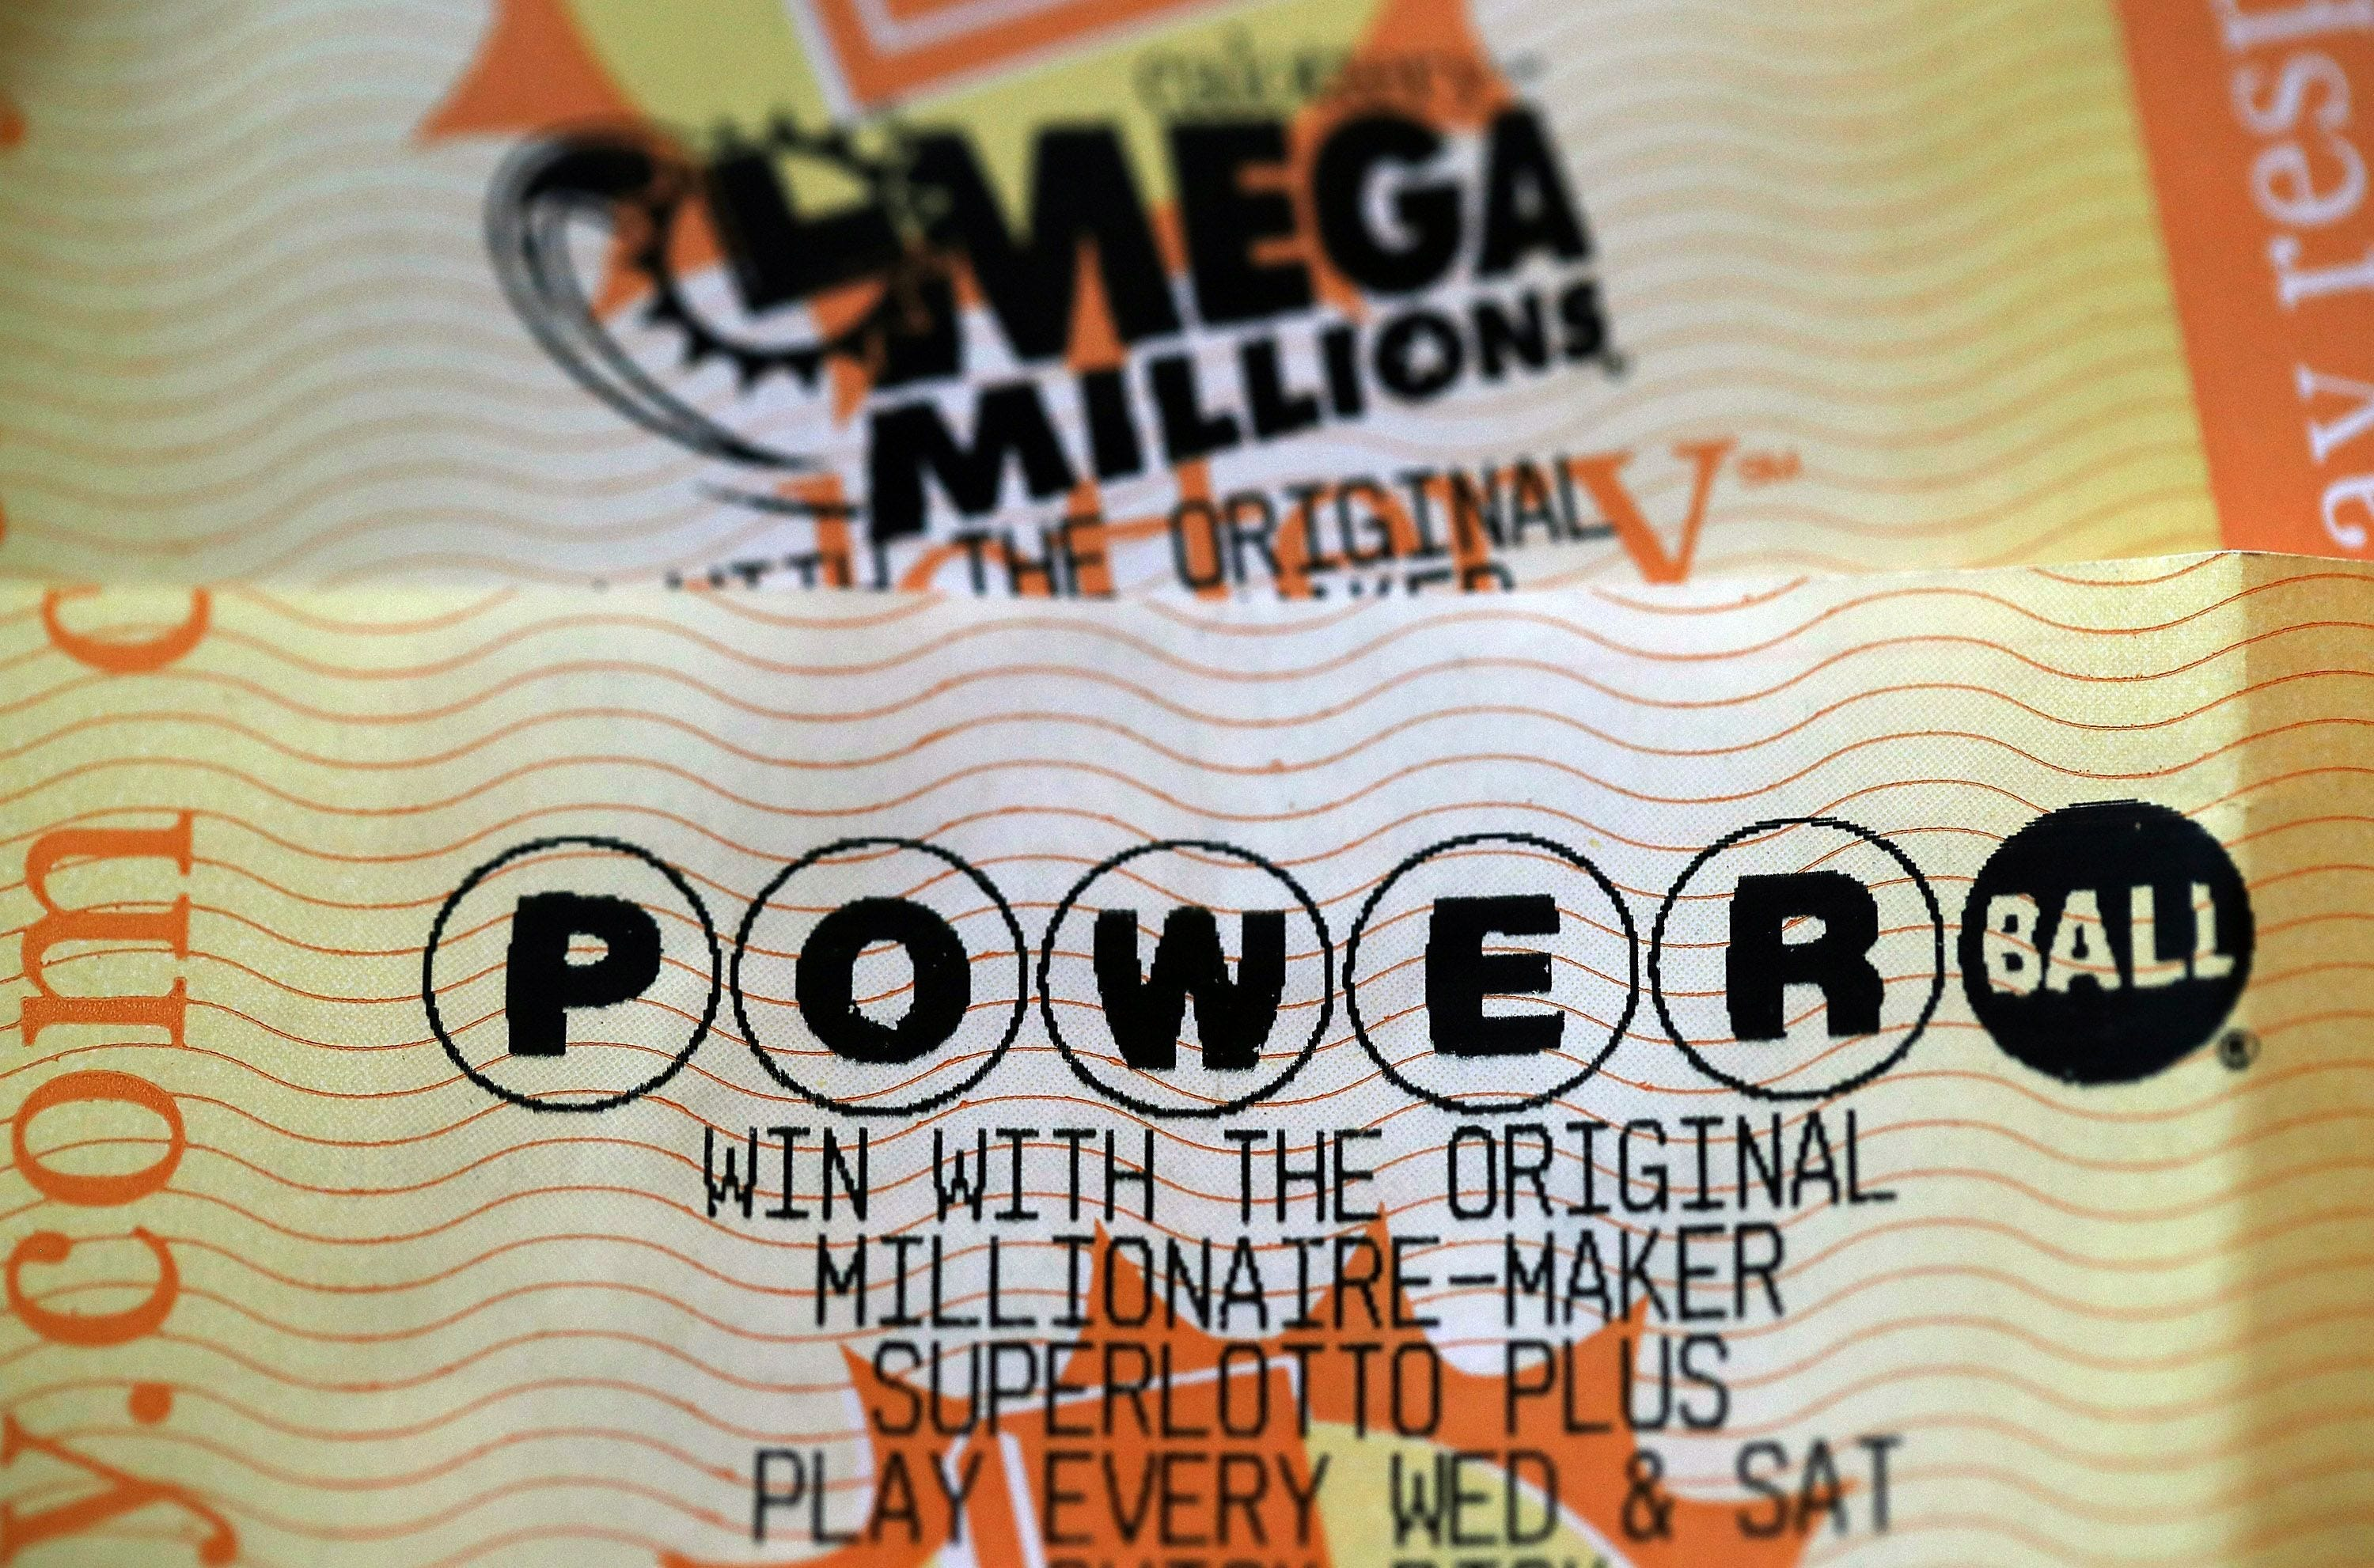 Check your tickets: Powerball $550M winning numbers announced